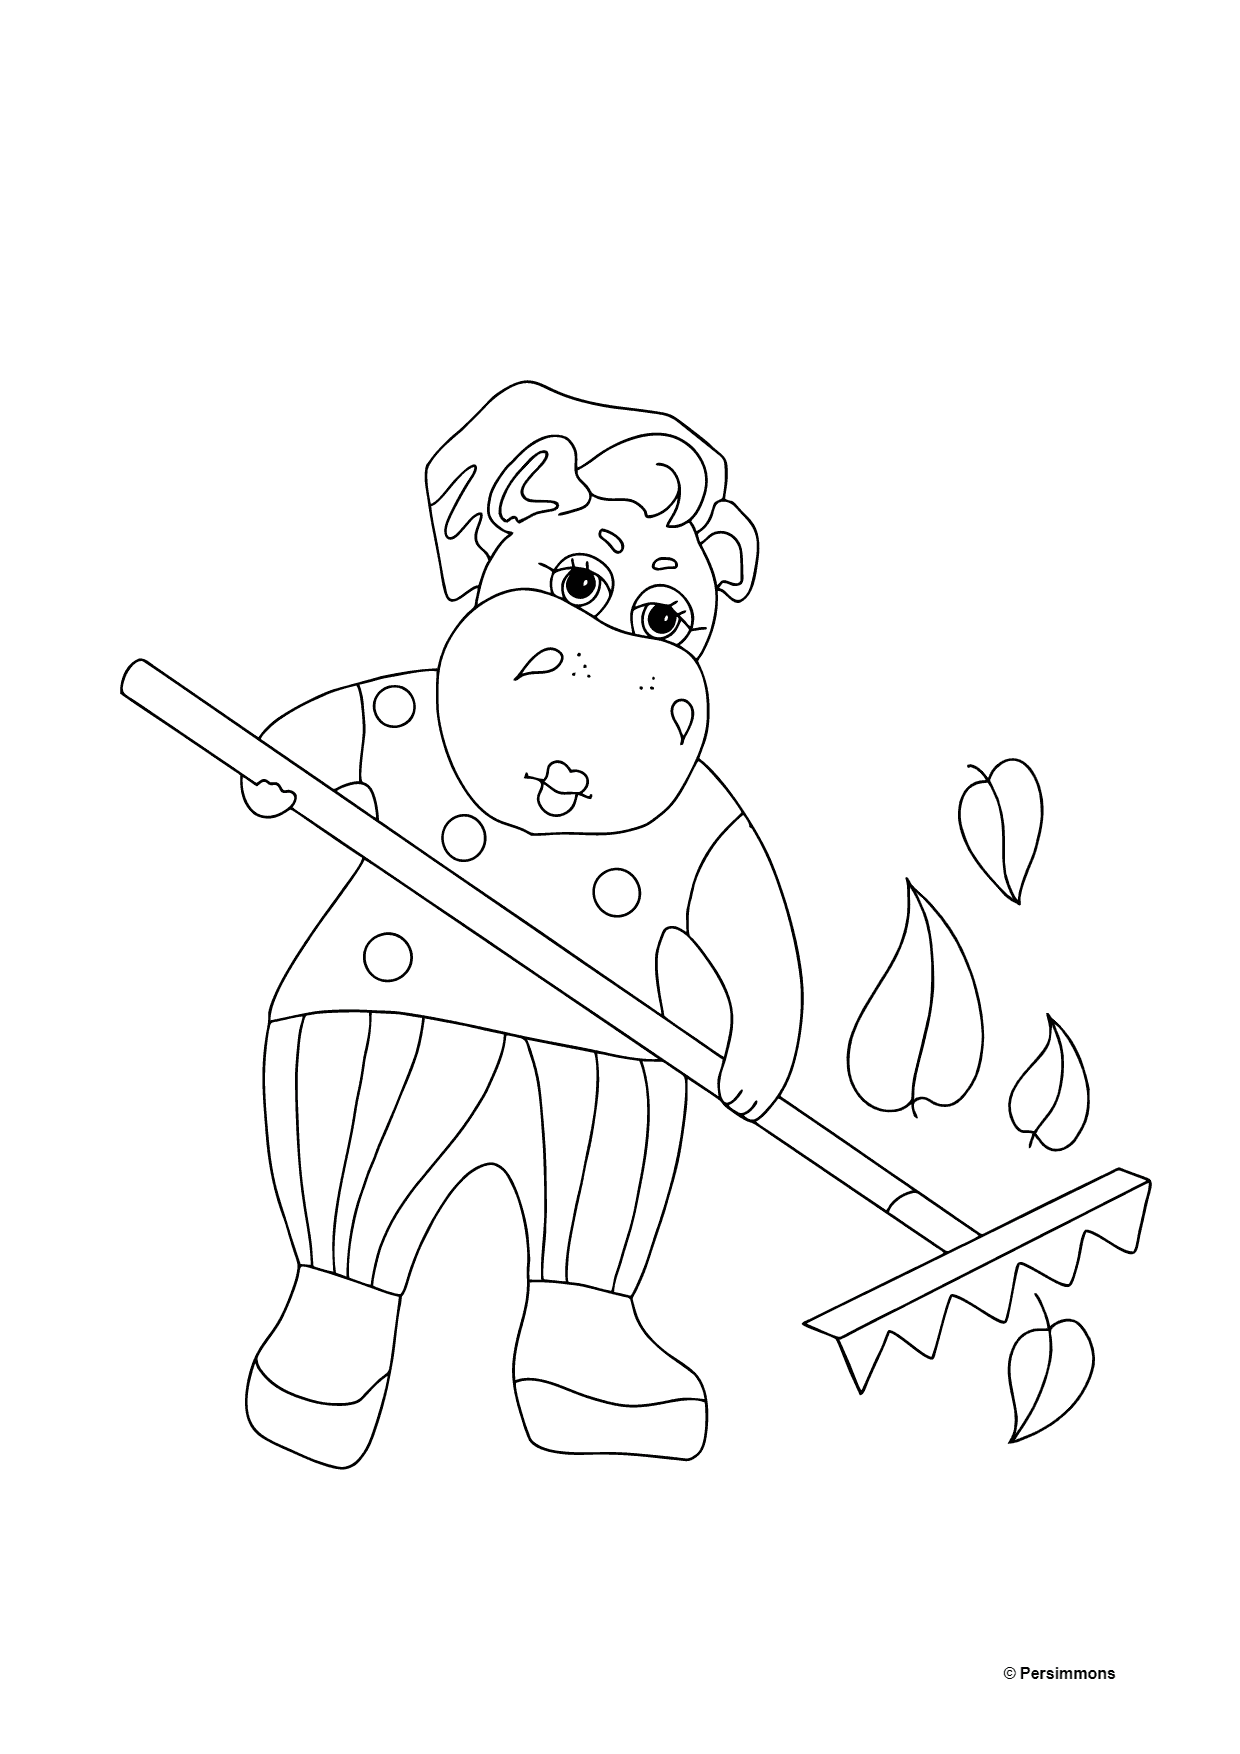 Coloring Page - A Hippo is Collecting Fallen Leaves for Kids